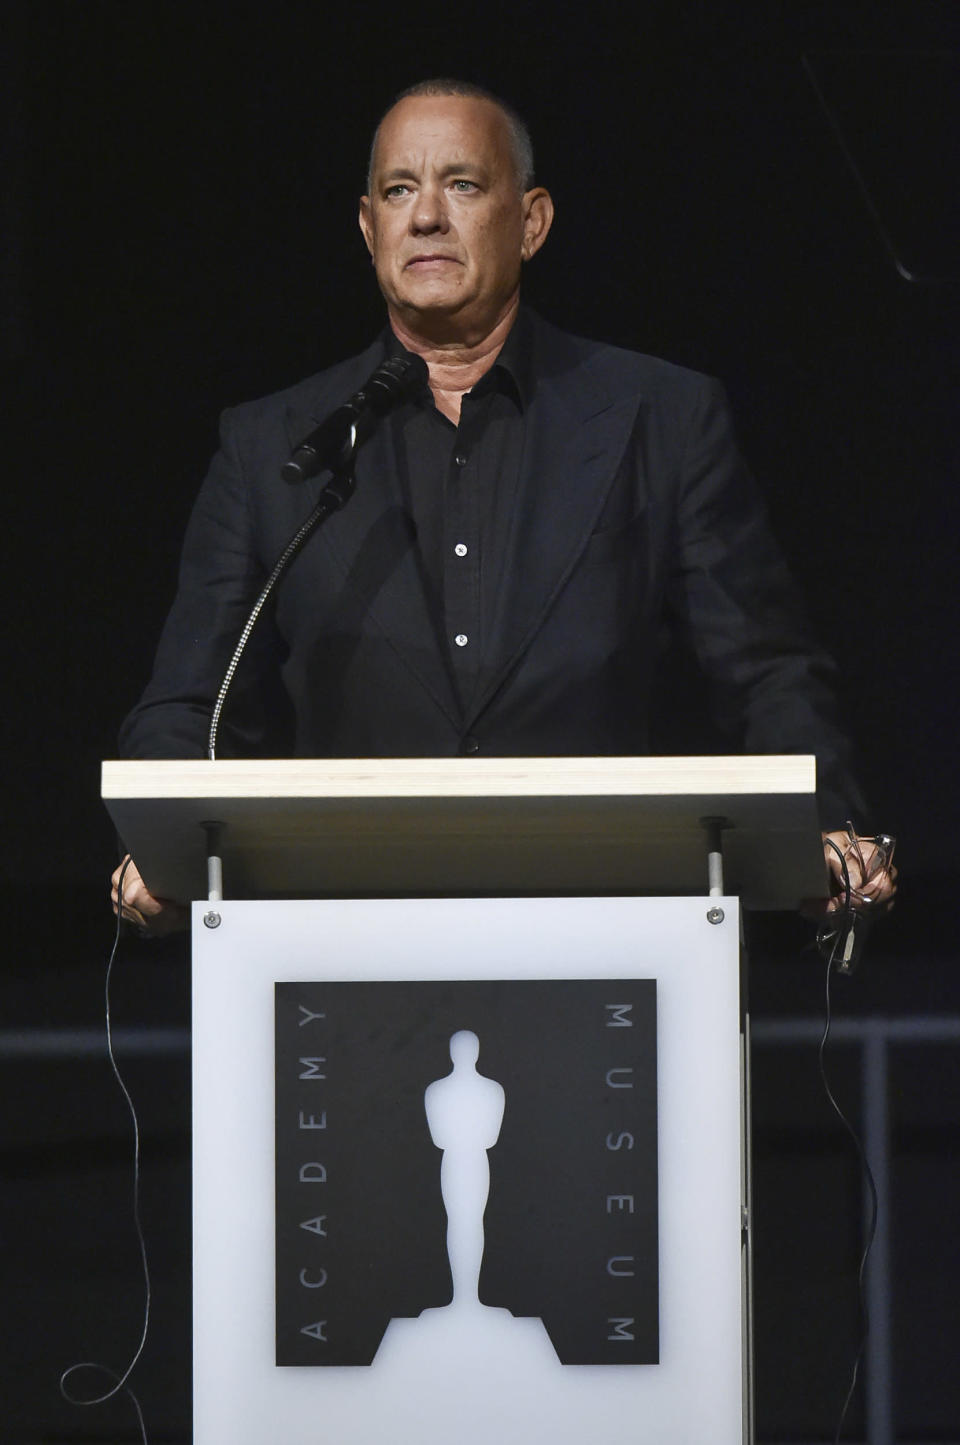 Tom Hanks speaks at a press conference for the opening of the Academy Museum on Tuesday, Sept. 21, 2021, in Los Angeles. (Photo by Richard Shotwell/Invision/AP)